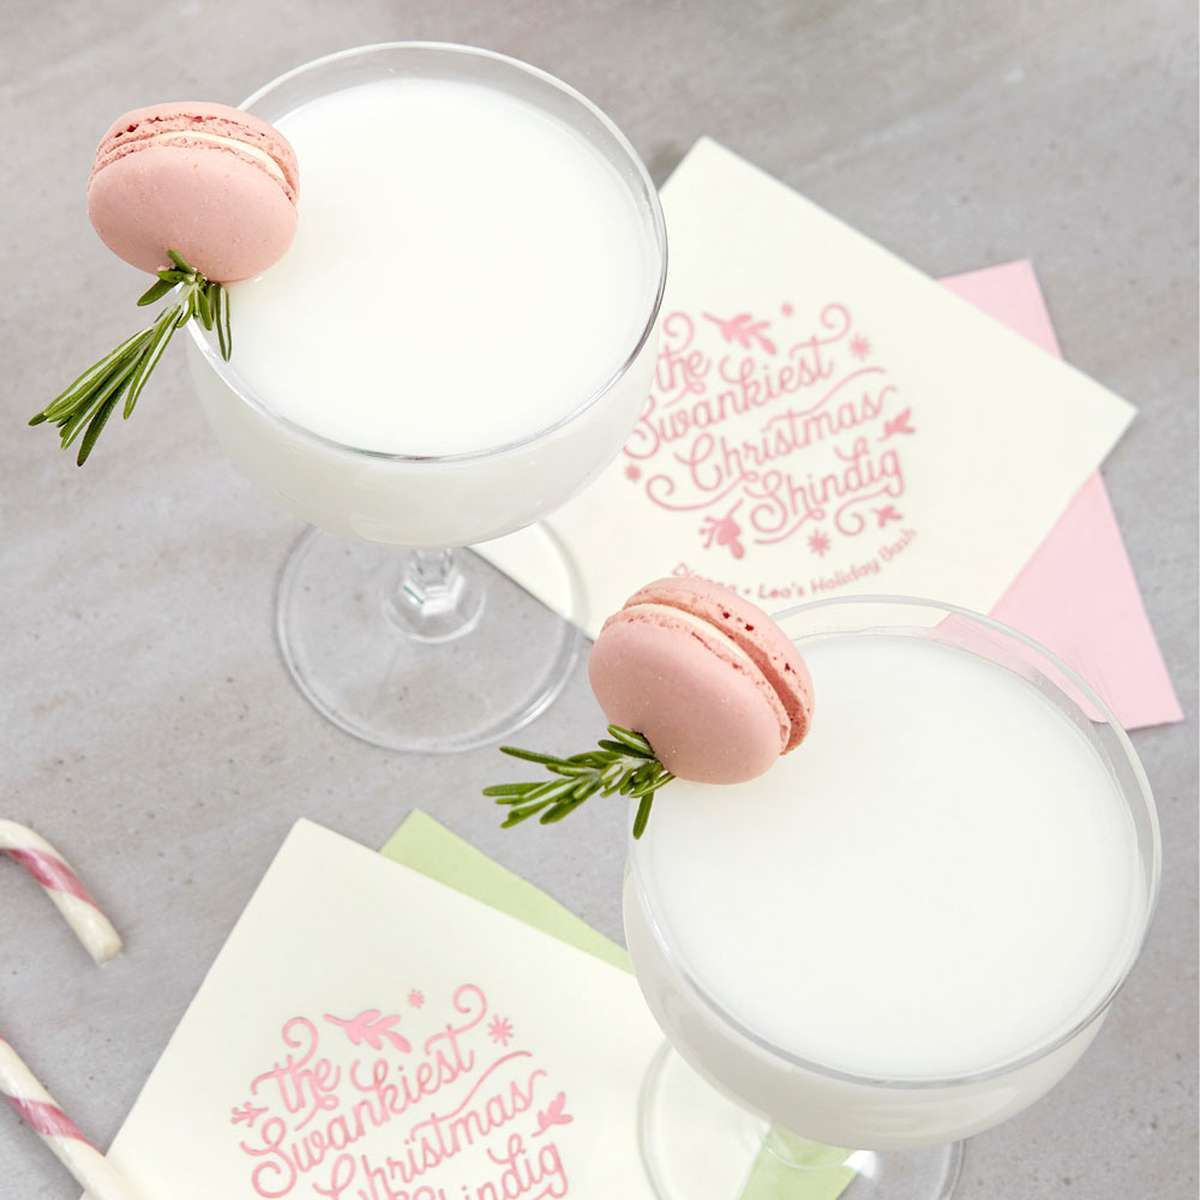 creamy rum cocktail recipe with rose syrup and a custom cocktail napkin